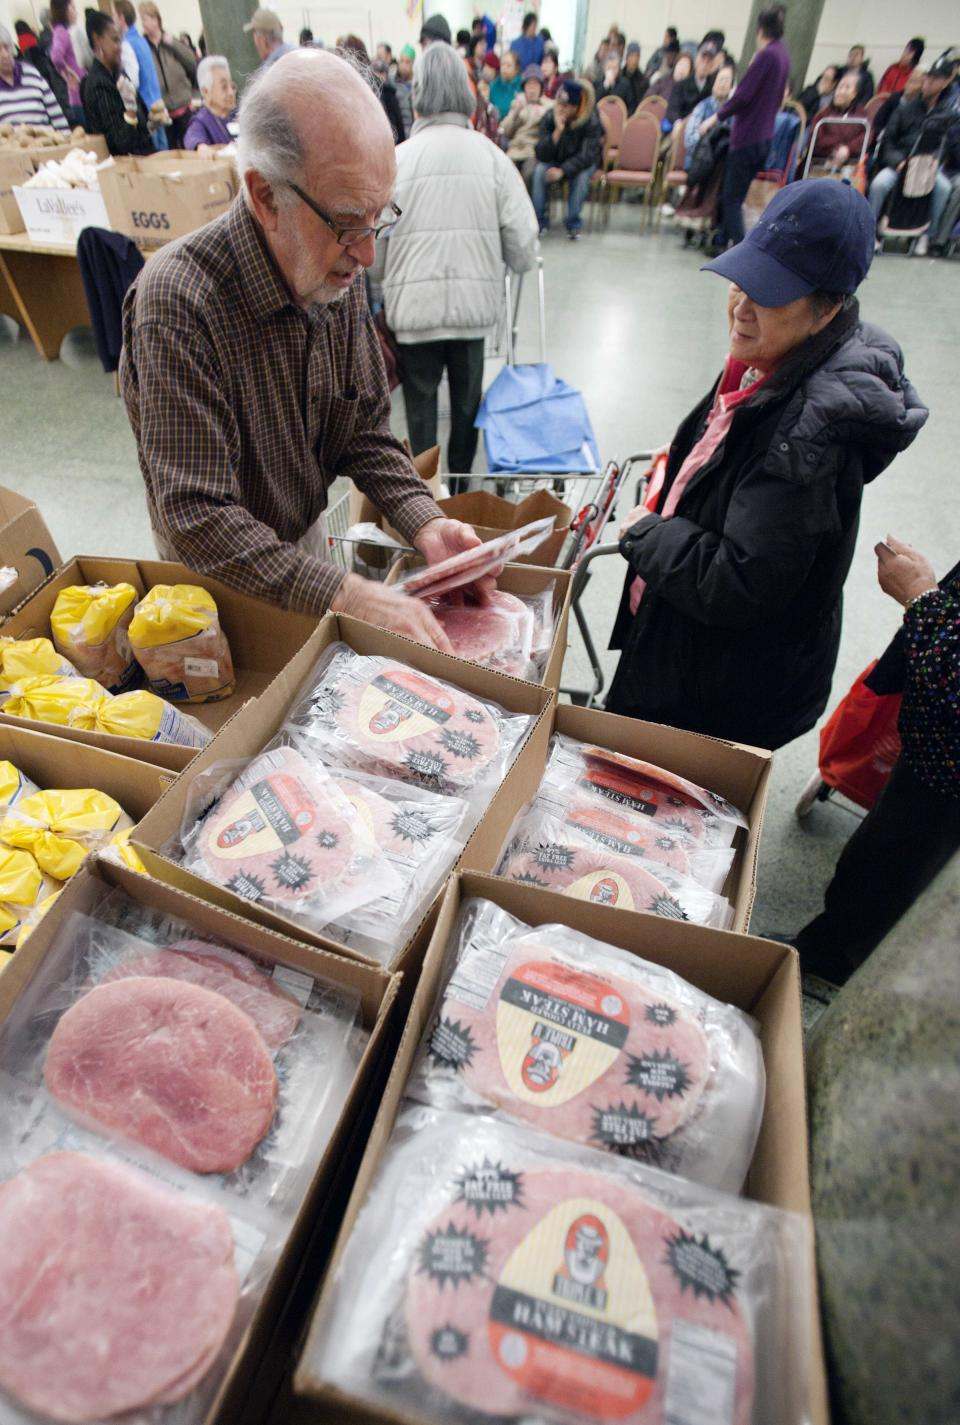 In this Thursday, March 29, 2012 photo, Paul Farris, left, of Boston, distributes hams in the Franciscan Food Center food pantry at St. Anthony Shrine in Boston. Ham prices have been higher than usual for the past two years because the cost of pig feed has gone up. (AP Photo/Michael Dwyer)